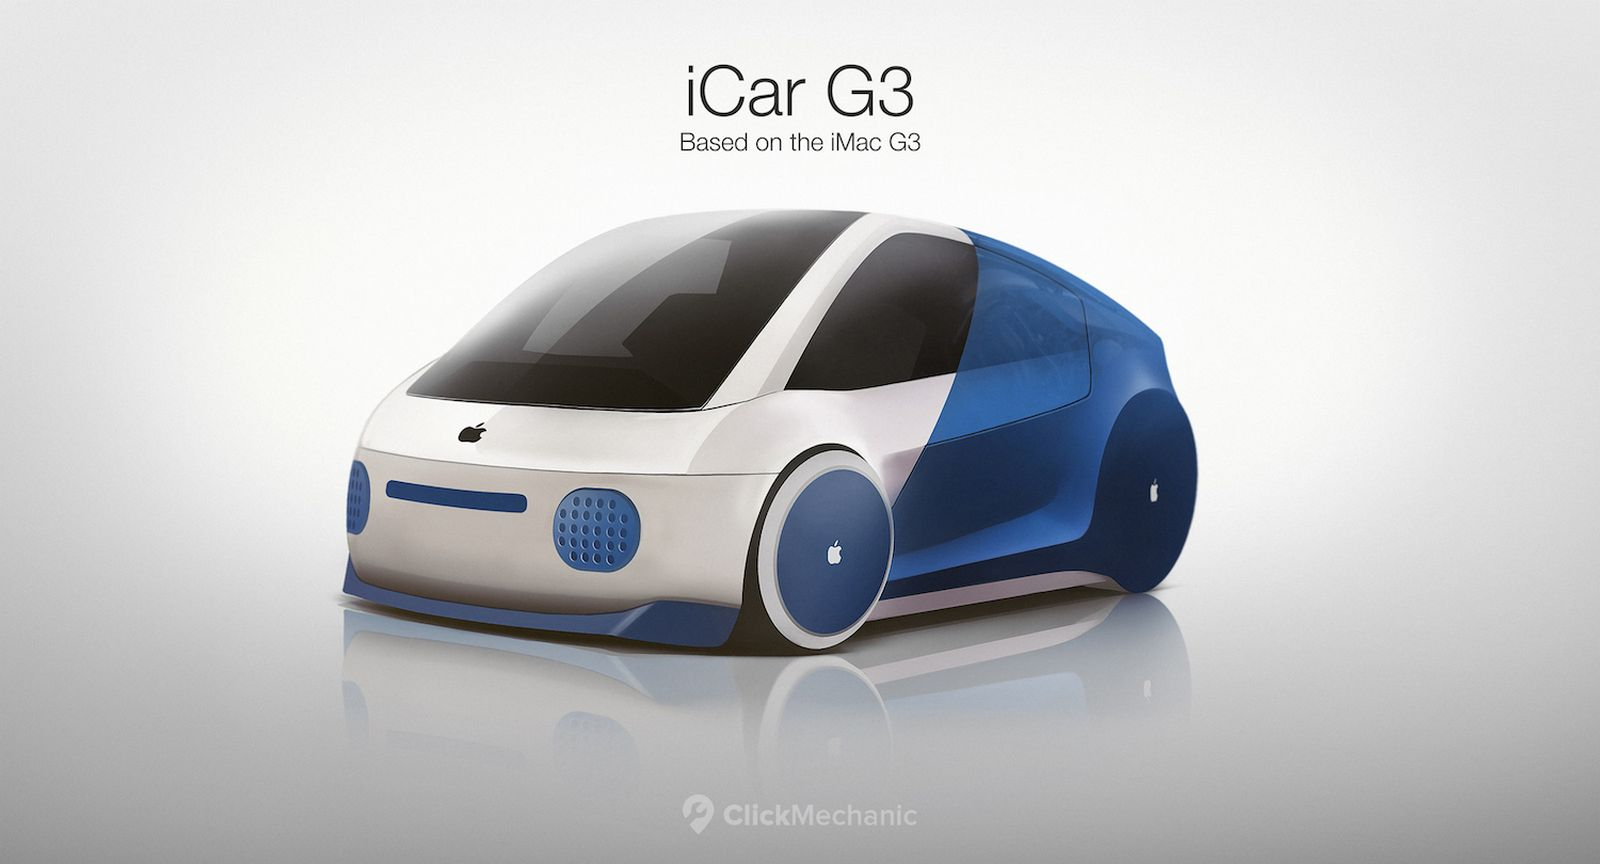 Apple's Electric Autonomous Car Will Take At Least 5 Years To Launch